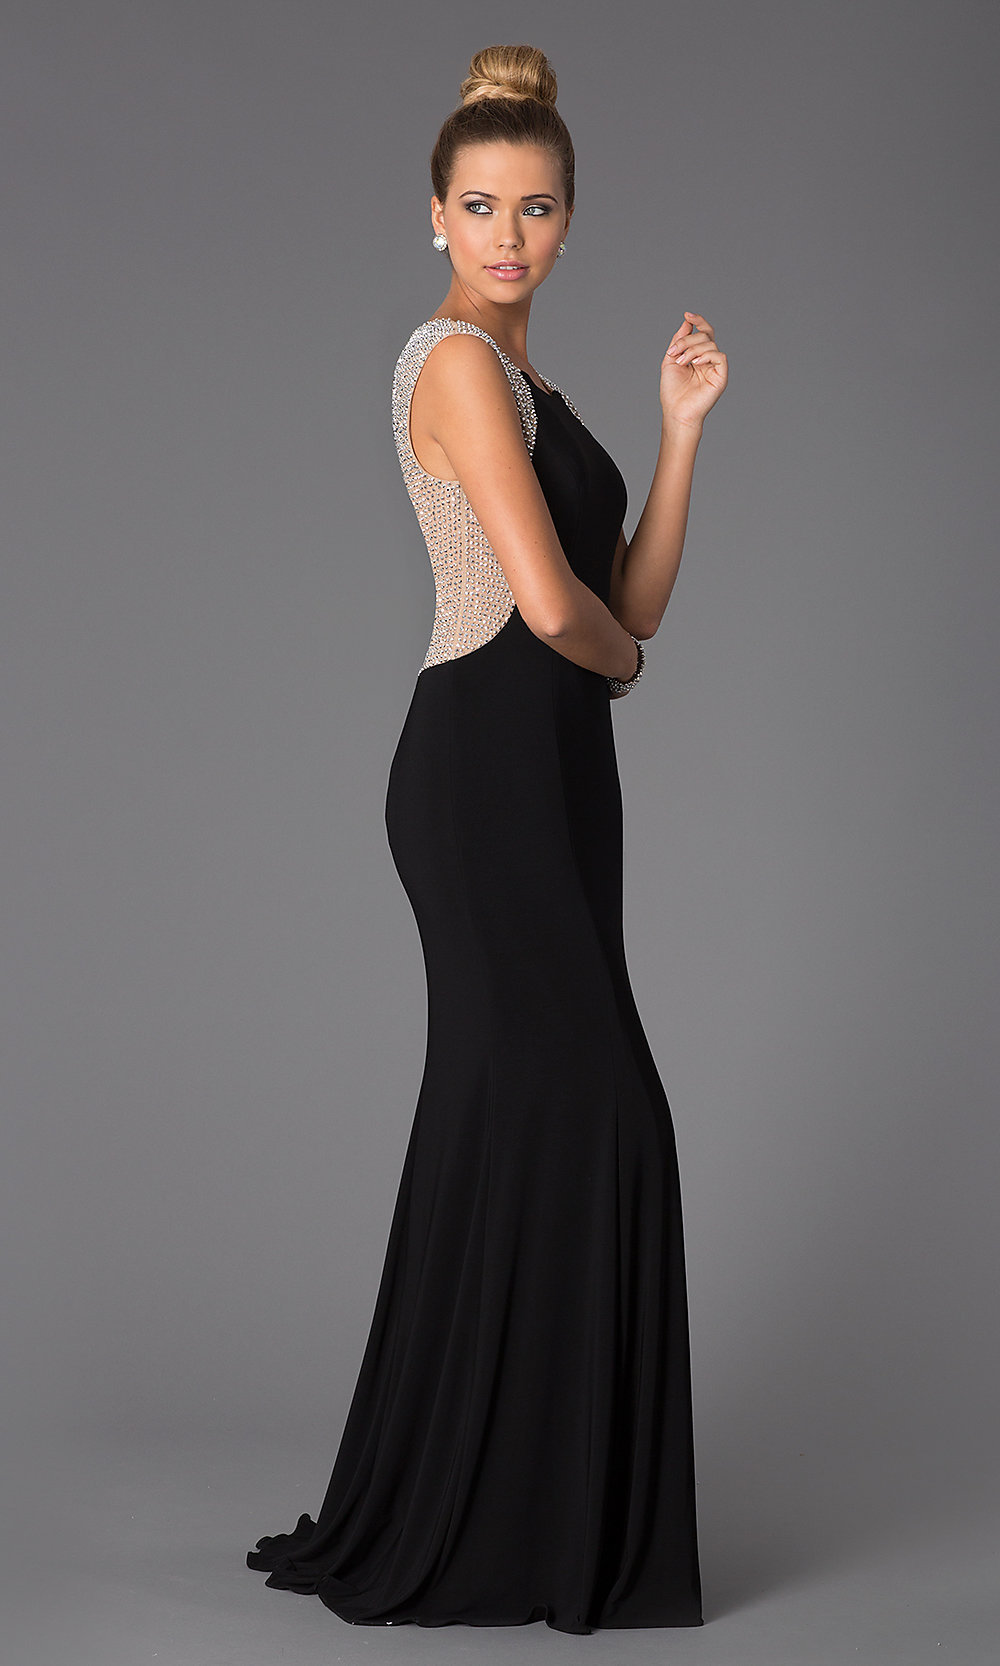 viewitem PD black dress wedding guest Hover to zoom